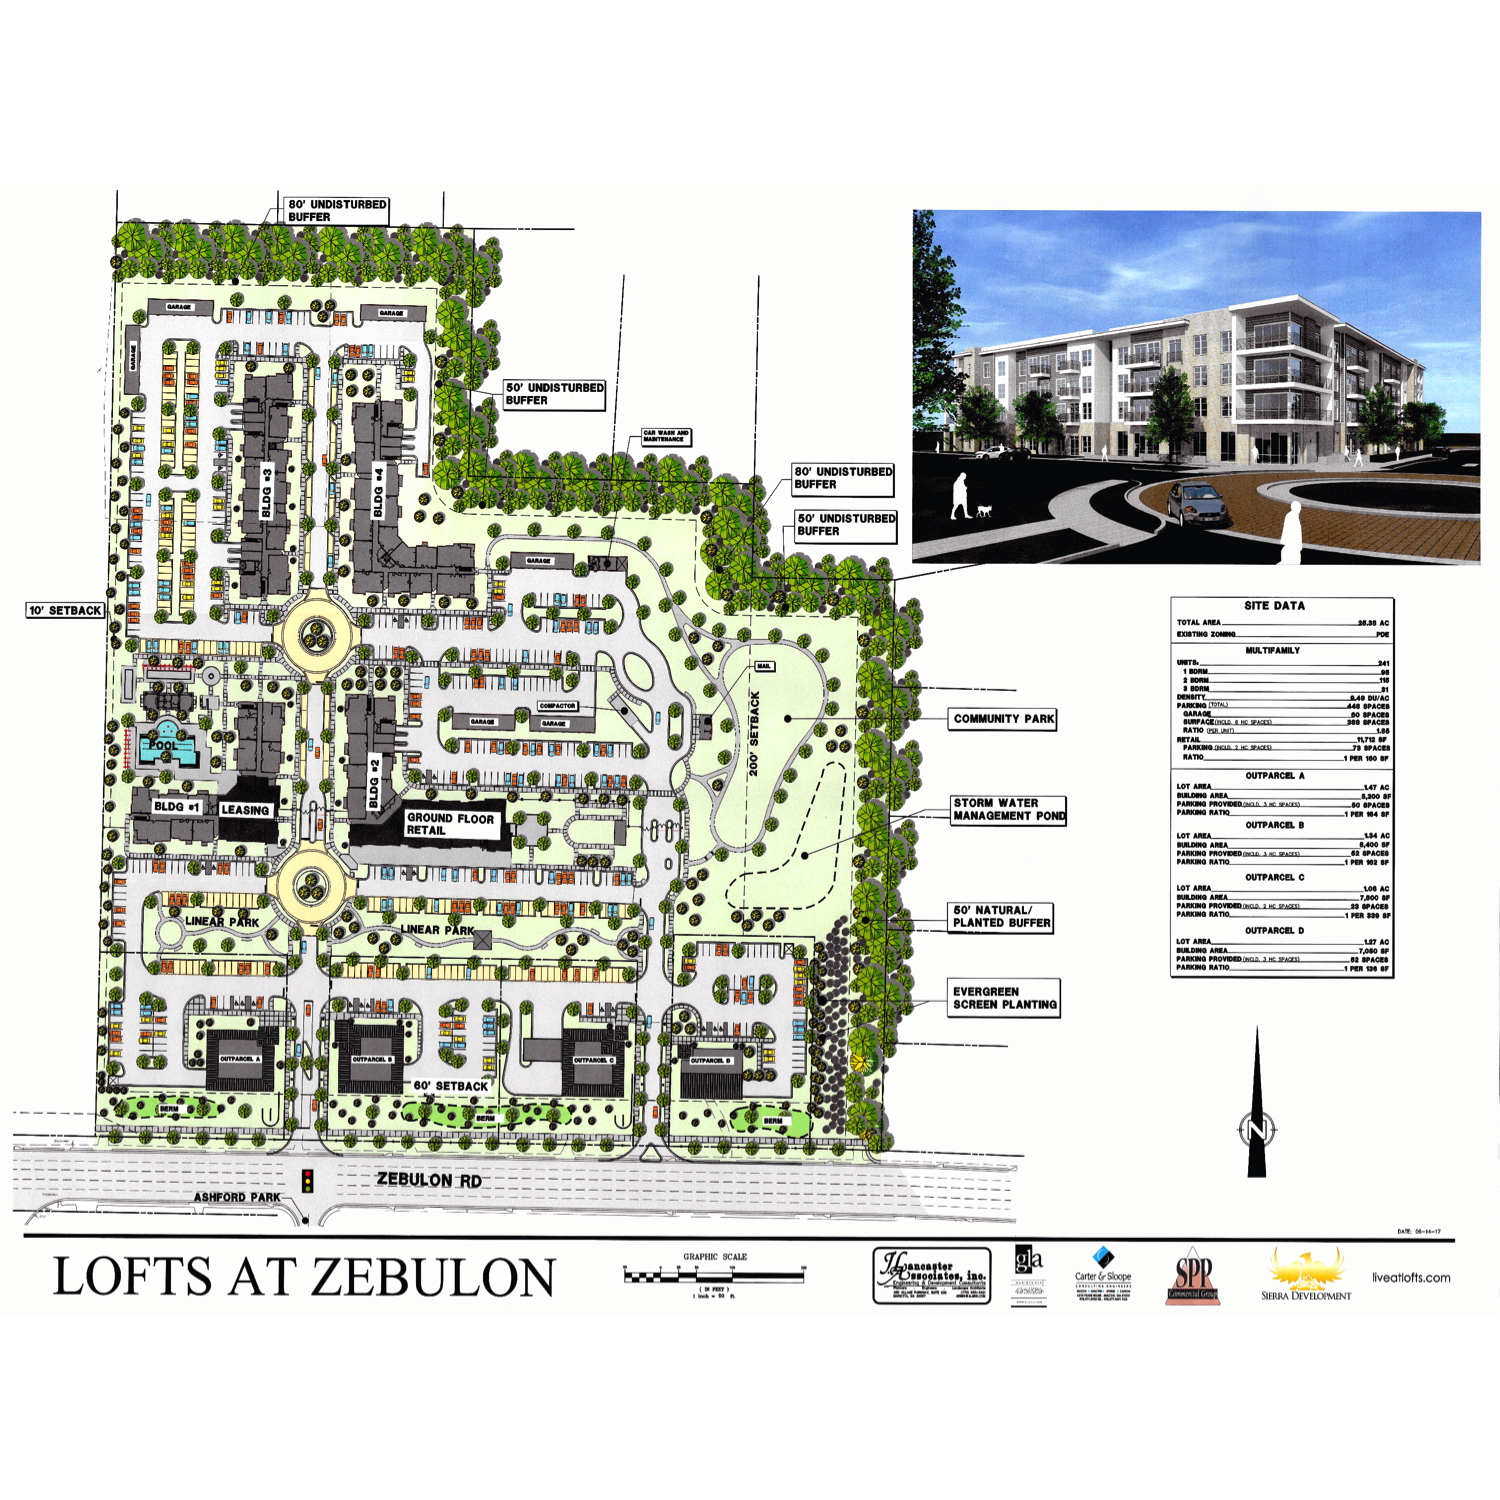 SITE PLAN ZEBULON.jpg